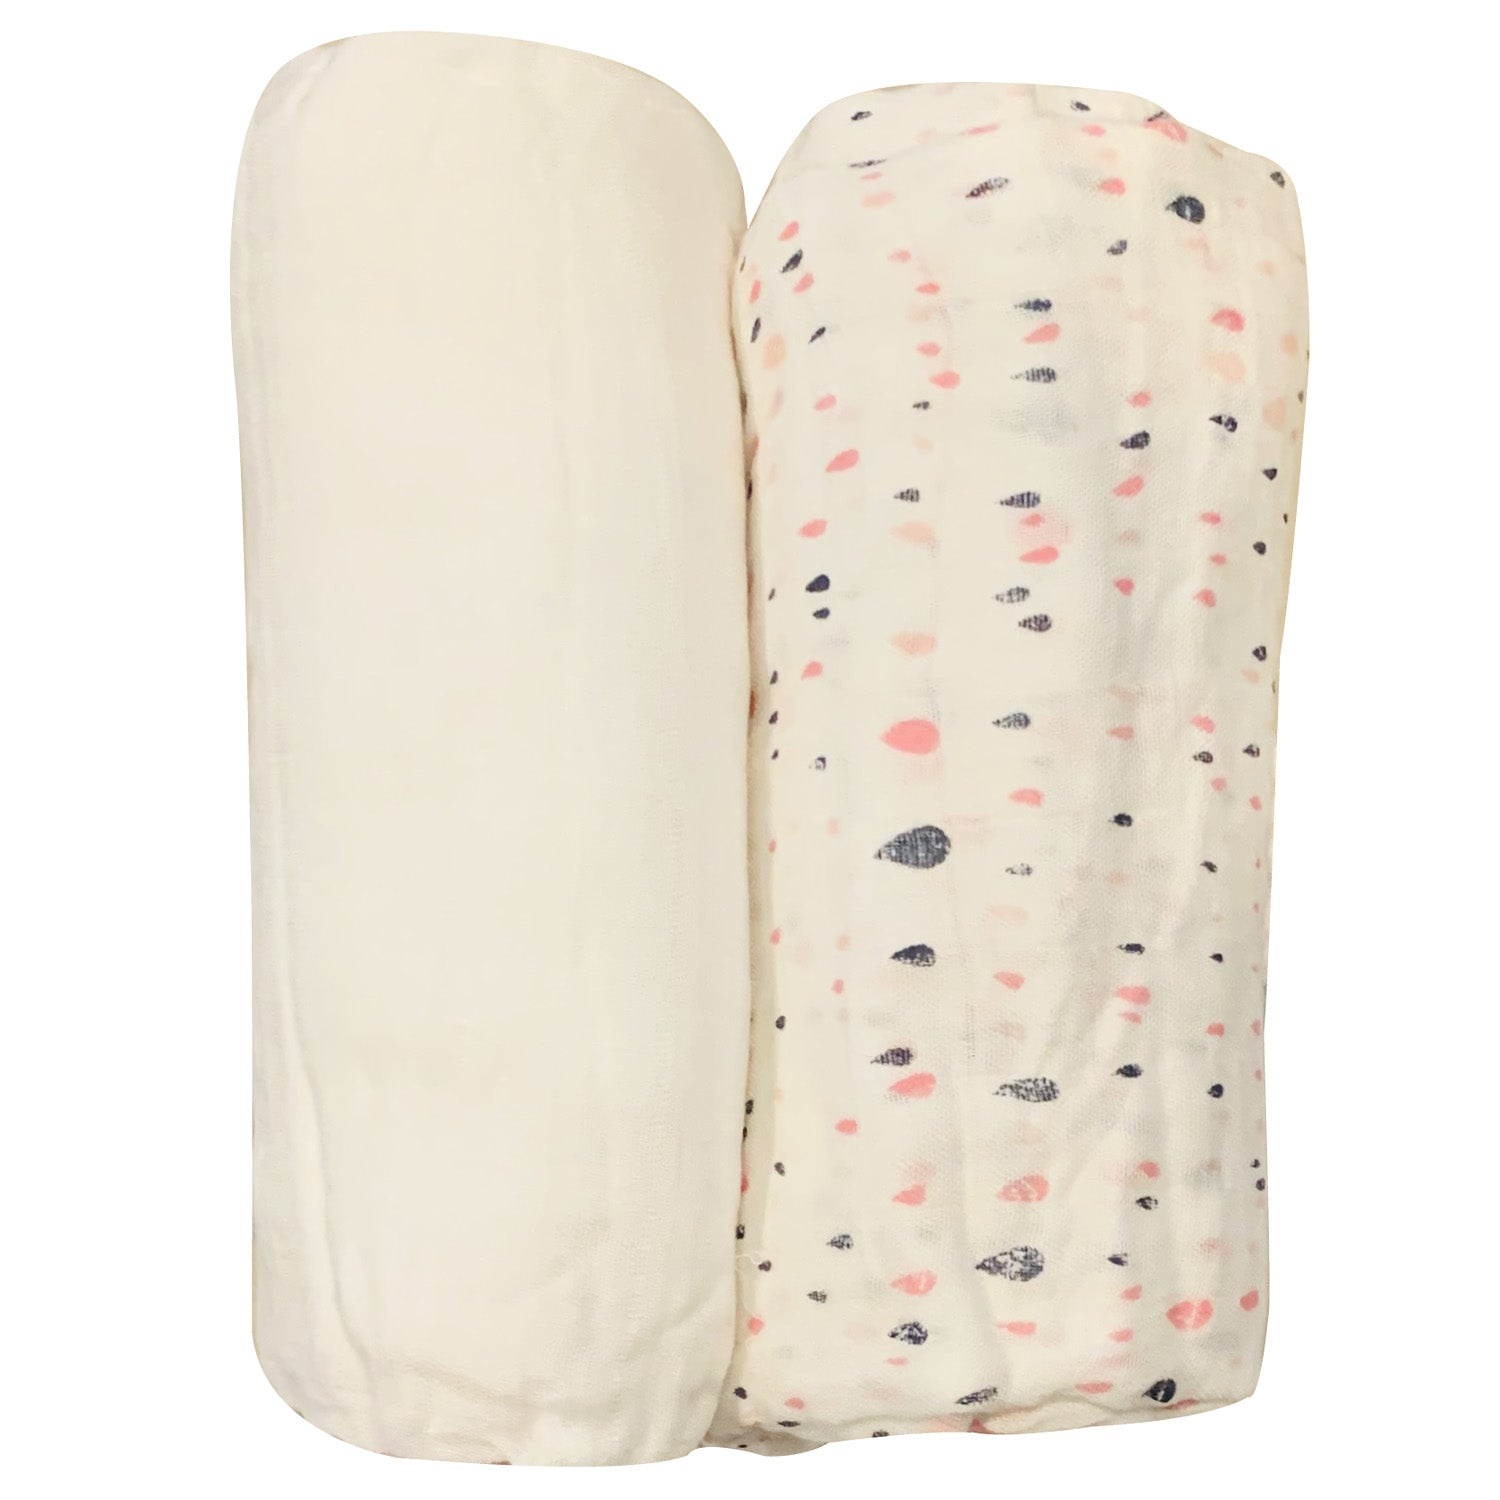 FIRSTS by Petit Lem Bamboo Muslin Swaddle Blanket 2 Pack - Catch of the Day Pink